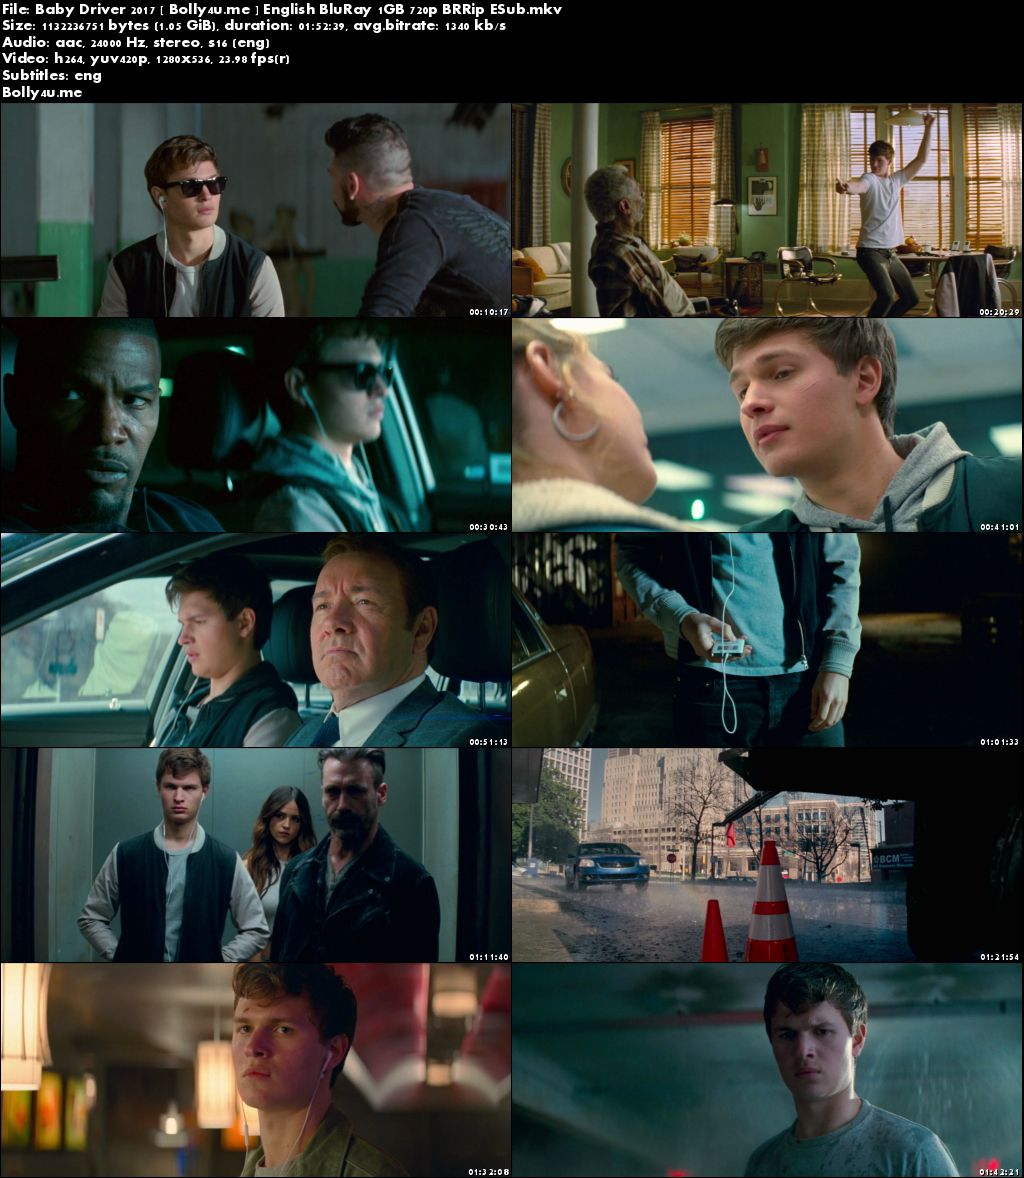 baby driver full movie download in hindi hd 1080p